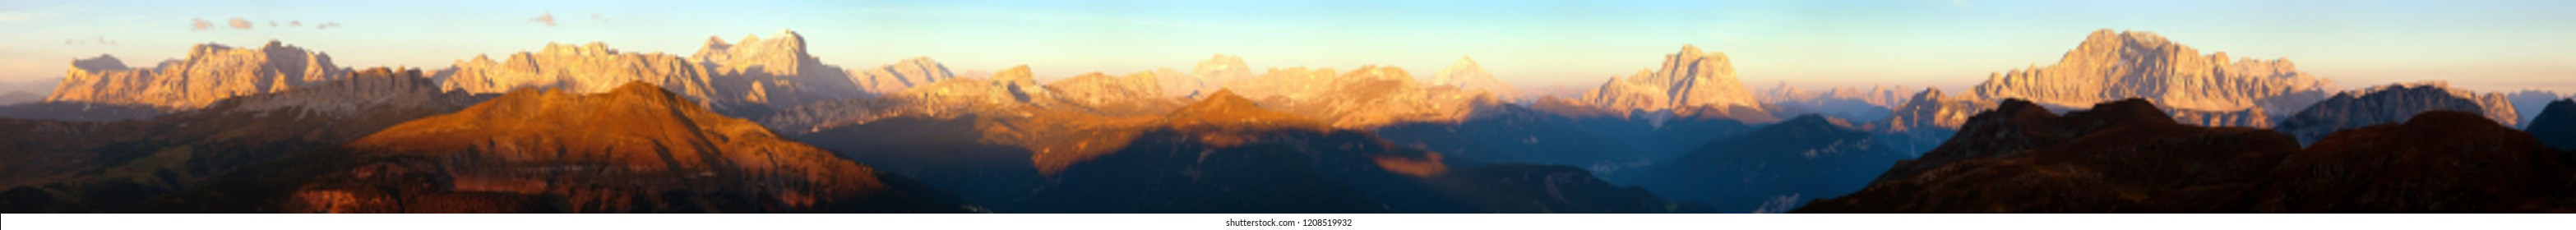 Evening sunset colored panoramic view of Alps Dolomites mountains from Col di Lana, Pelmo, Tofana, Fanes, Cristallo, Antelao and others, Italian dolomites mountains, Italy